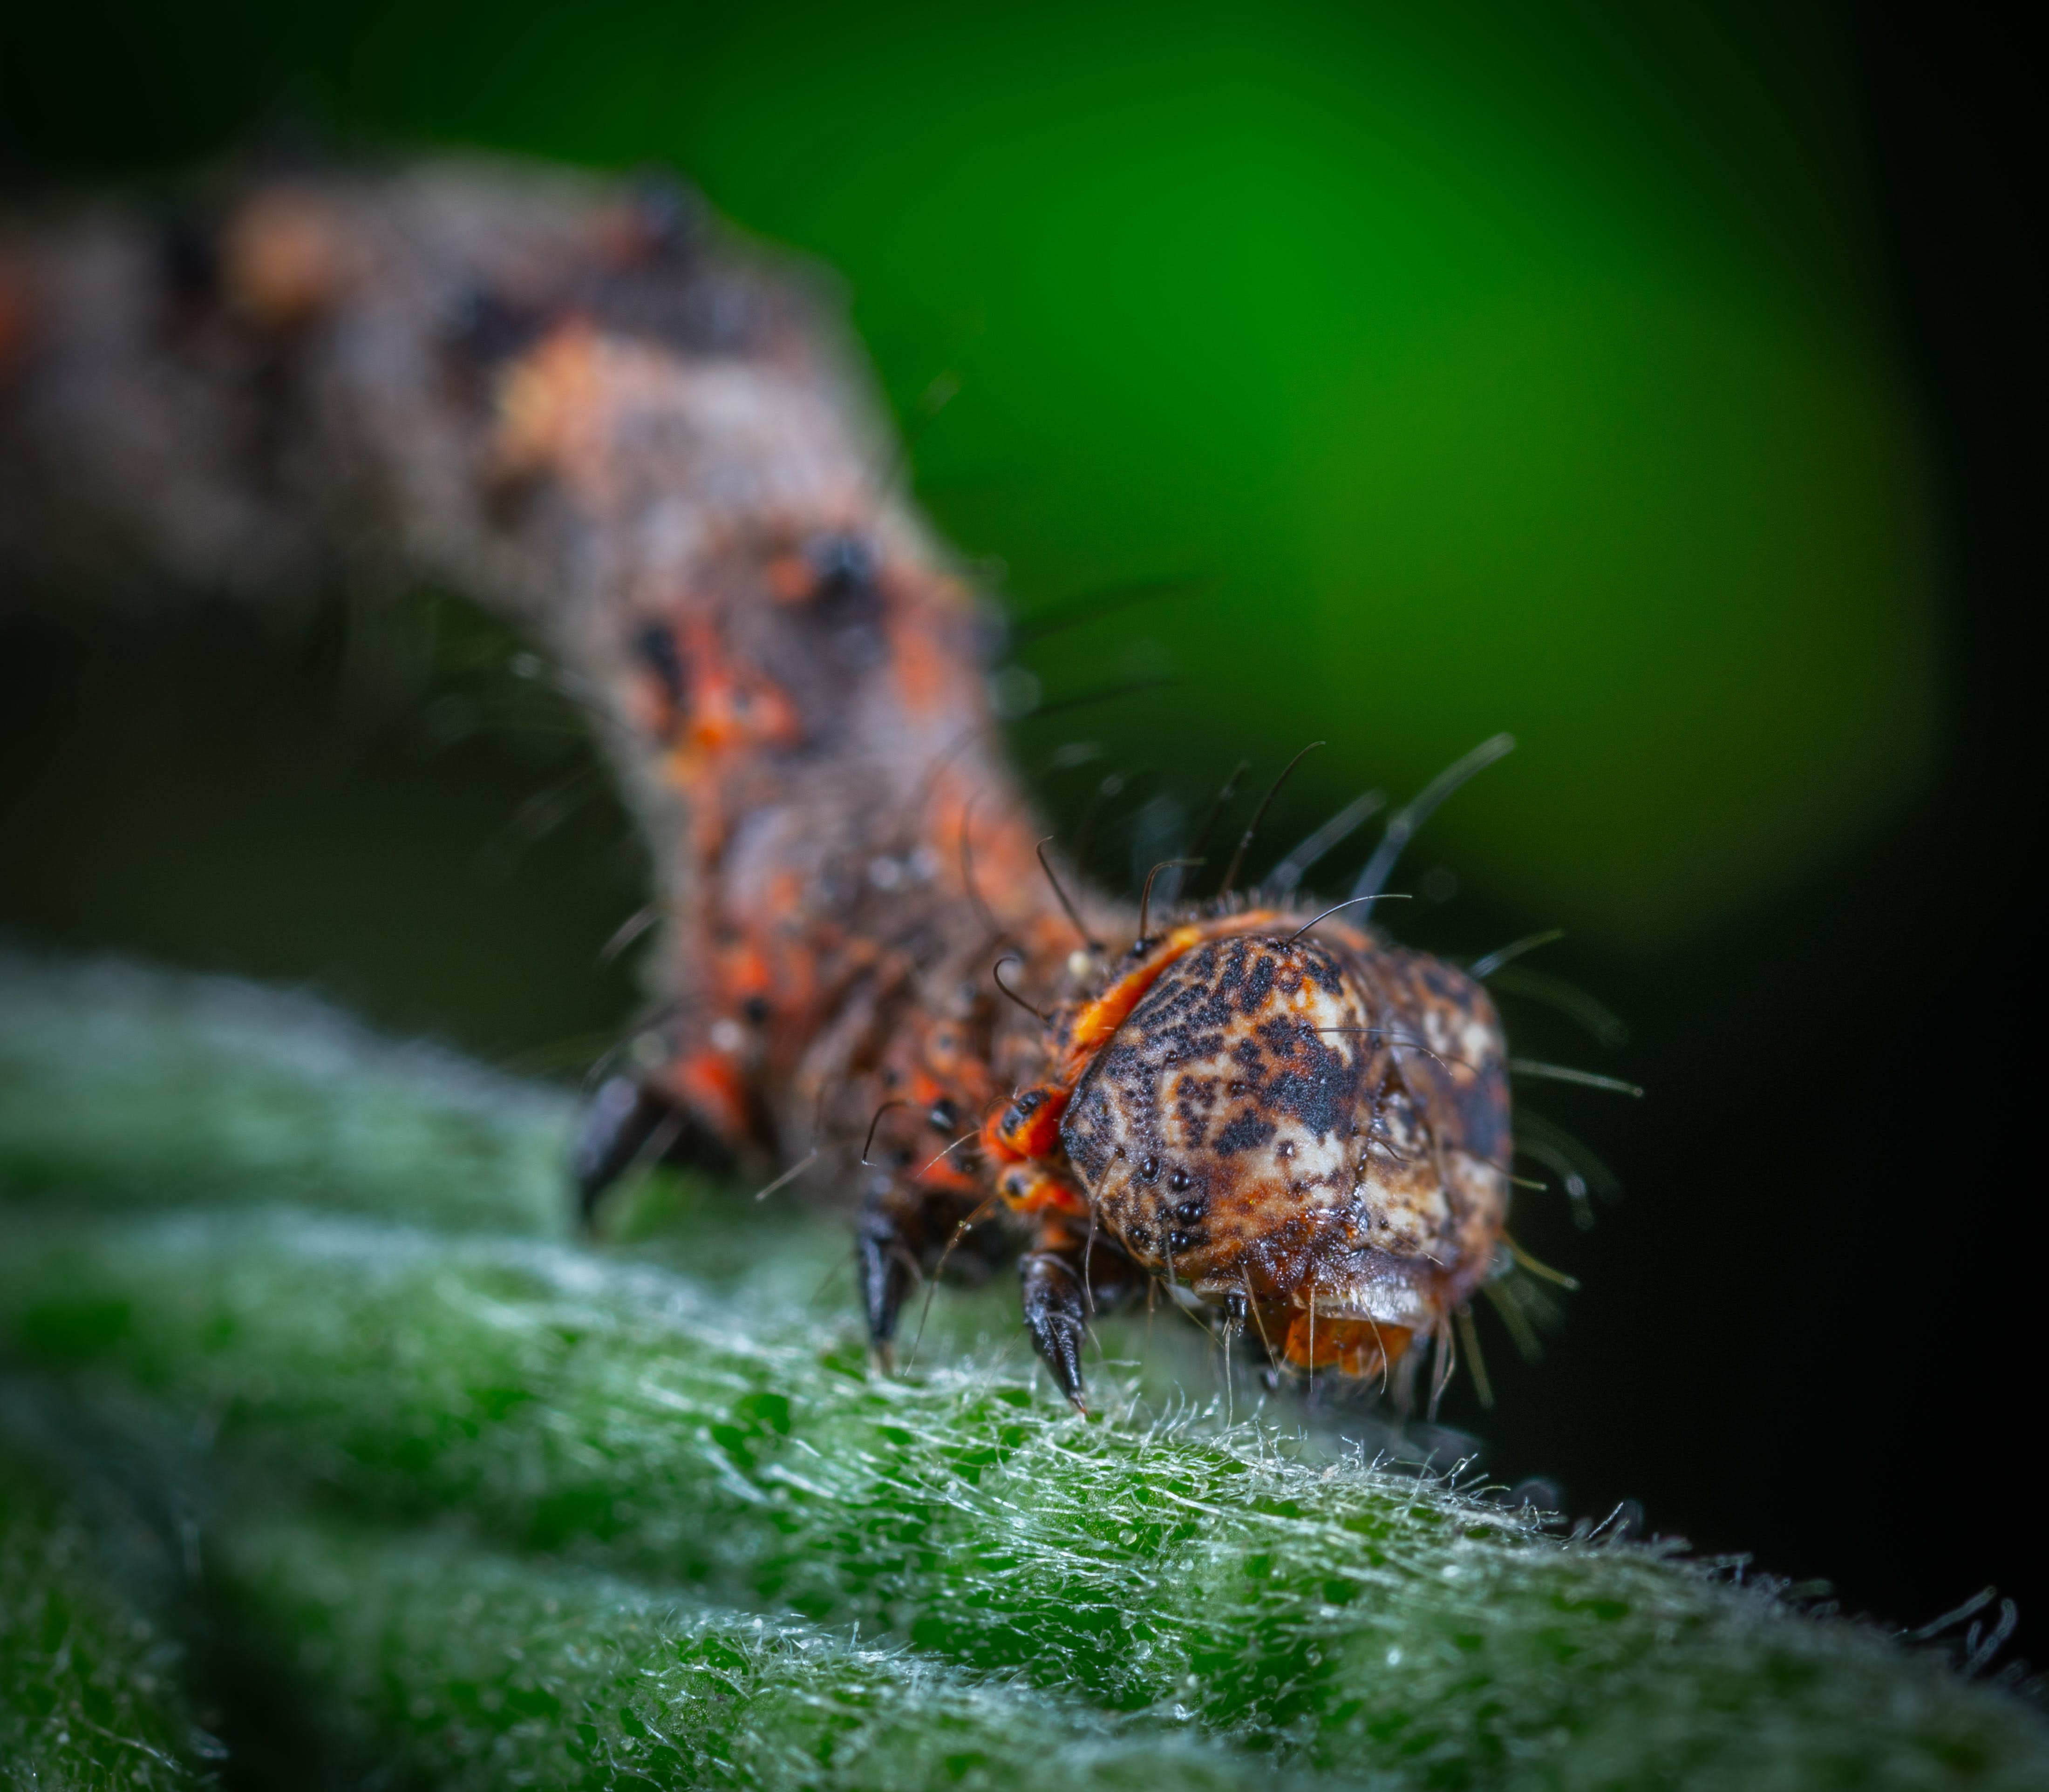 Orange and Black Caterpillar in Macro-photography